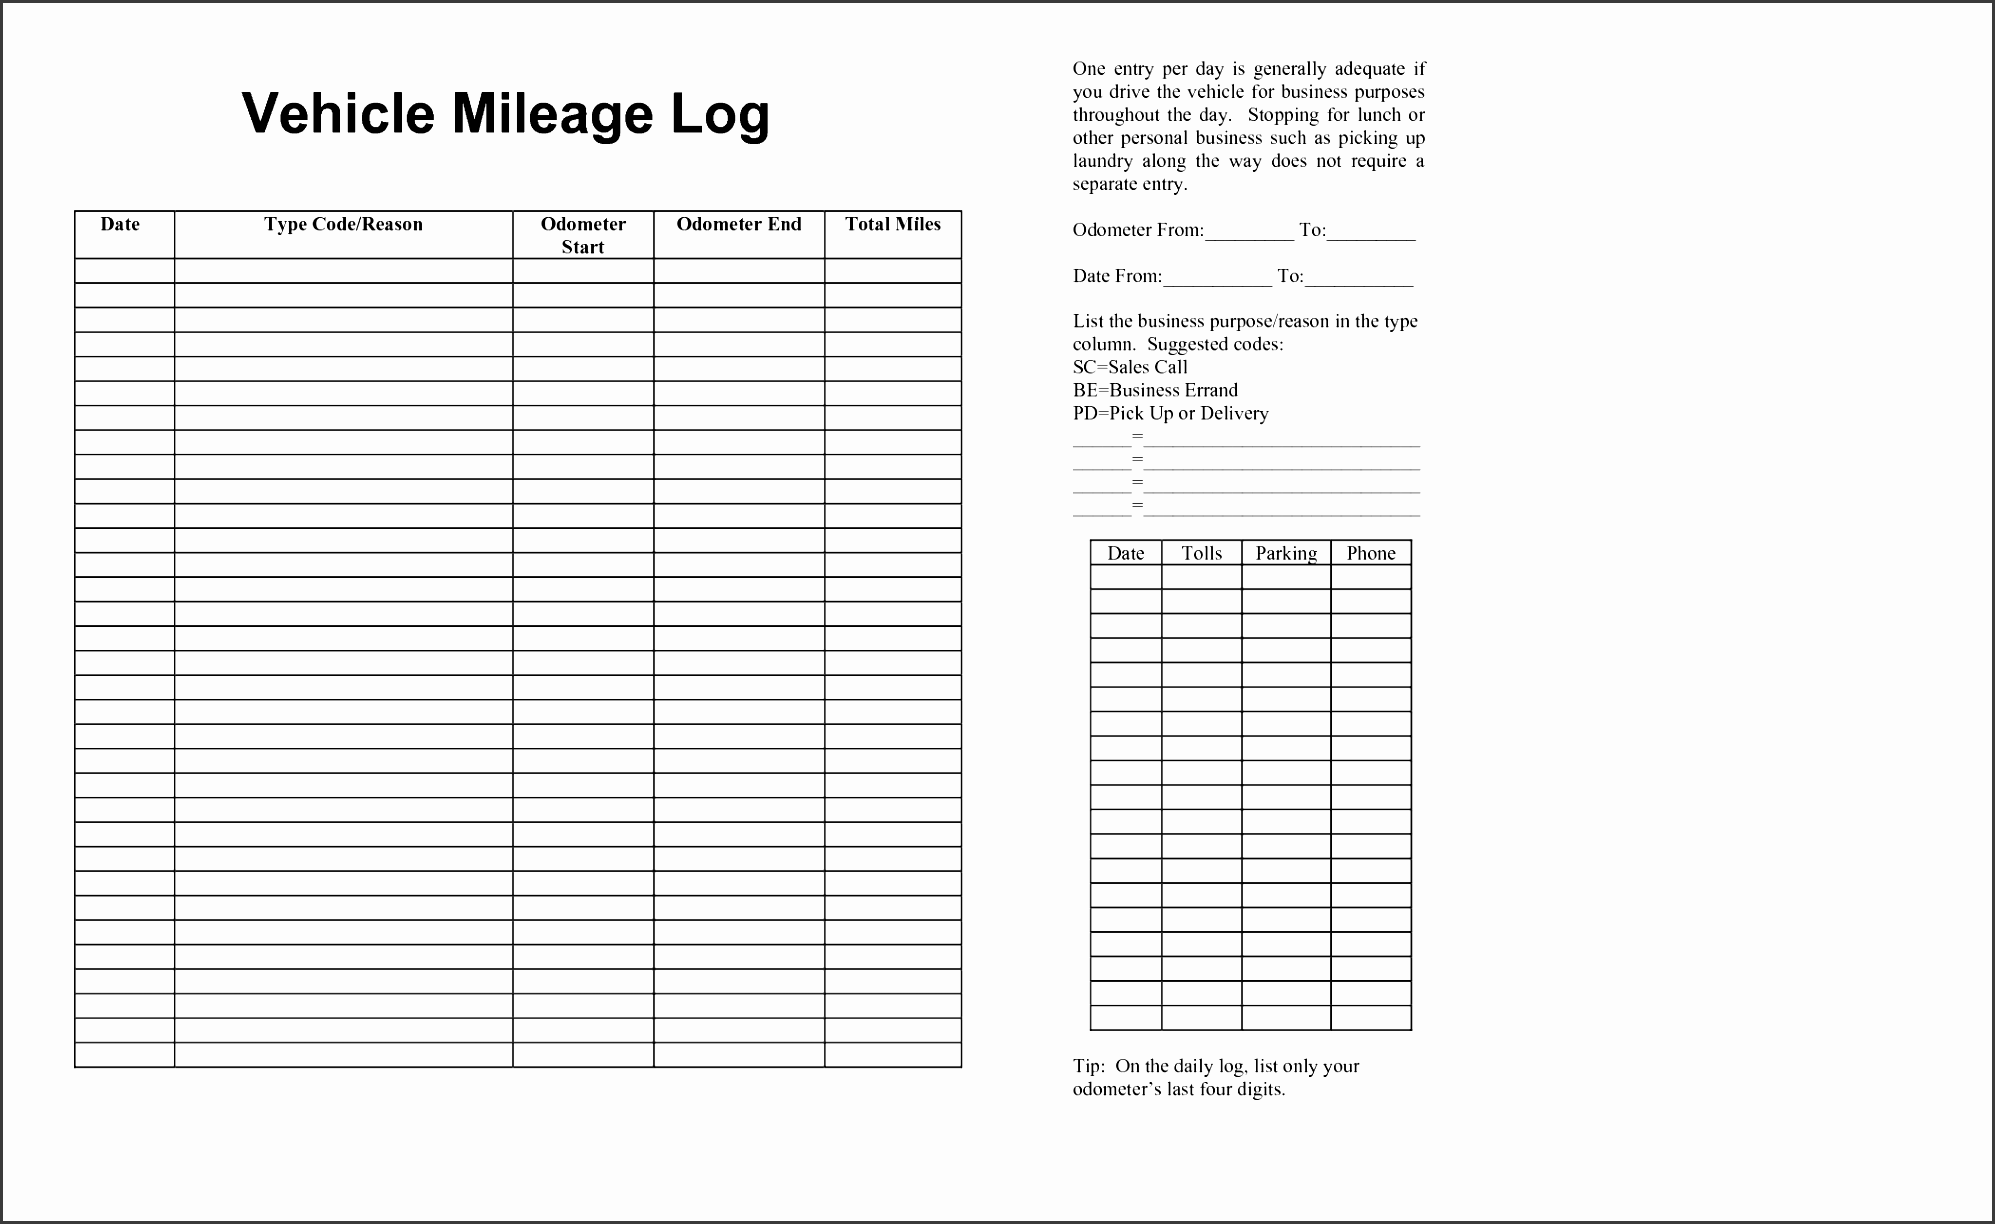 mileage log template 6 truck mileage log template sampletemplatess 23658